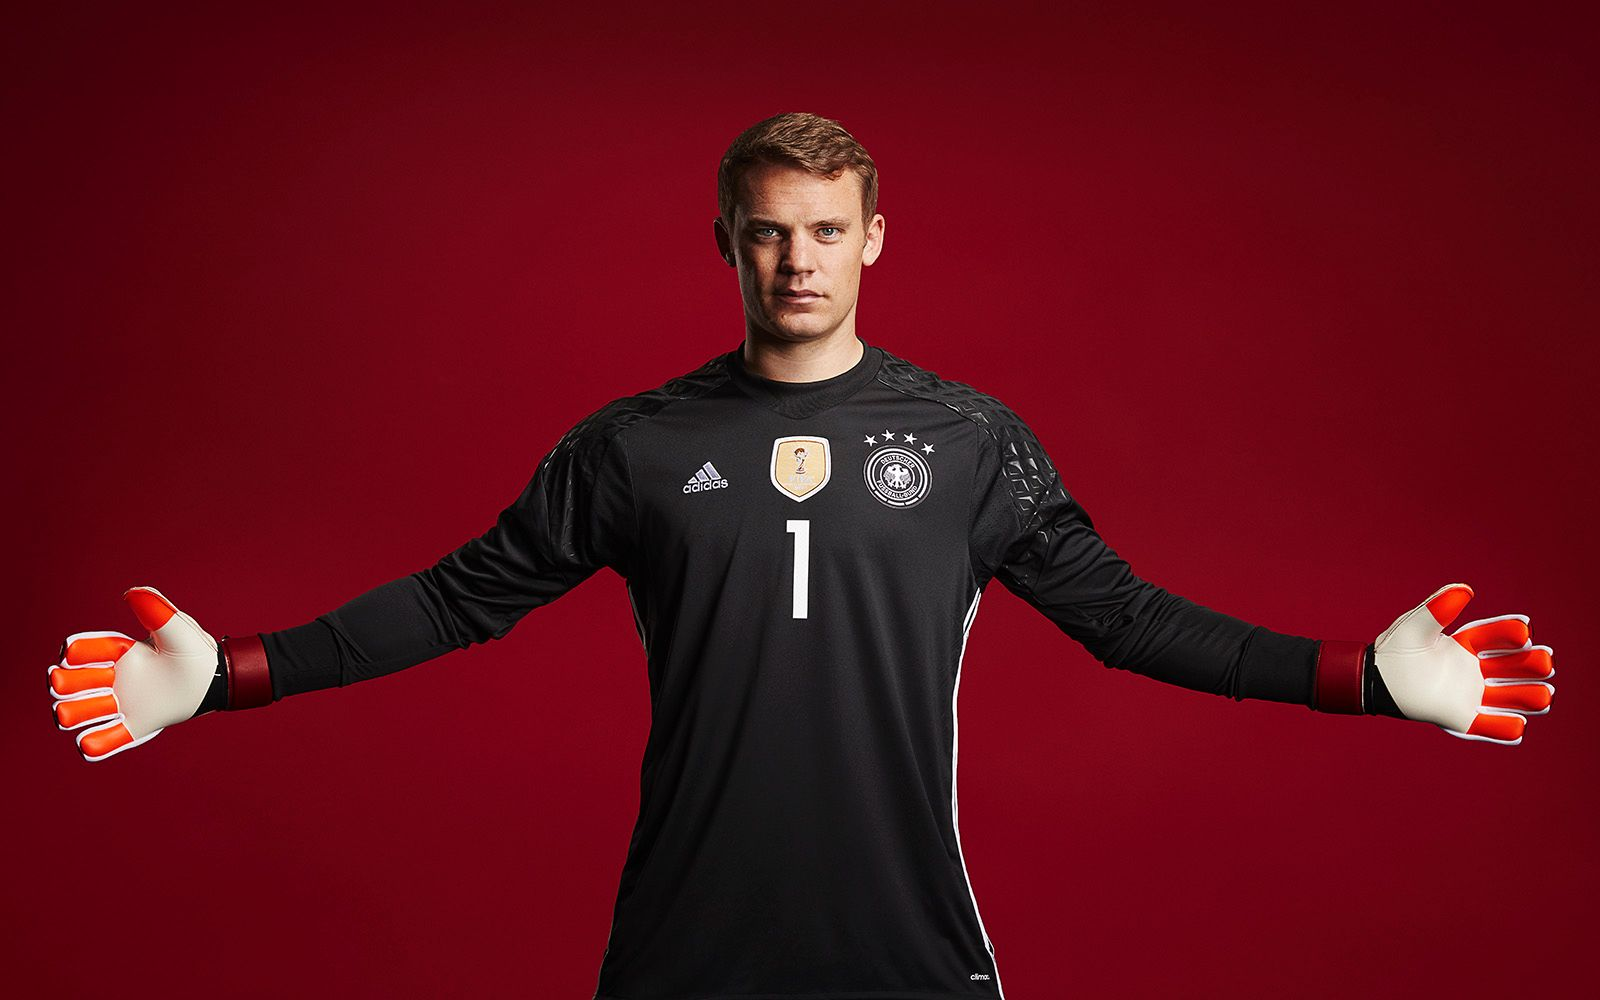 manuel neuer with Bayern Munich Manuel Neuer Changing Means Goalie on Alpenherz Beim Fisch Baeda additionally Wm Kader Deutschland 2014 19894 together with Lionel Messi Wallpapers further Benoit Hamon Reste Tres Discret Sur Sa V m460437 moreover Watch.